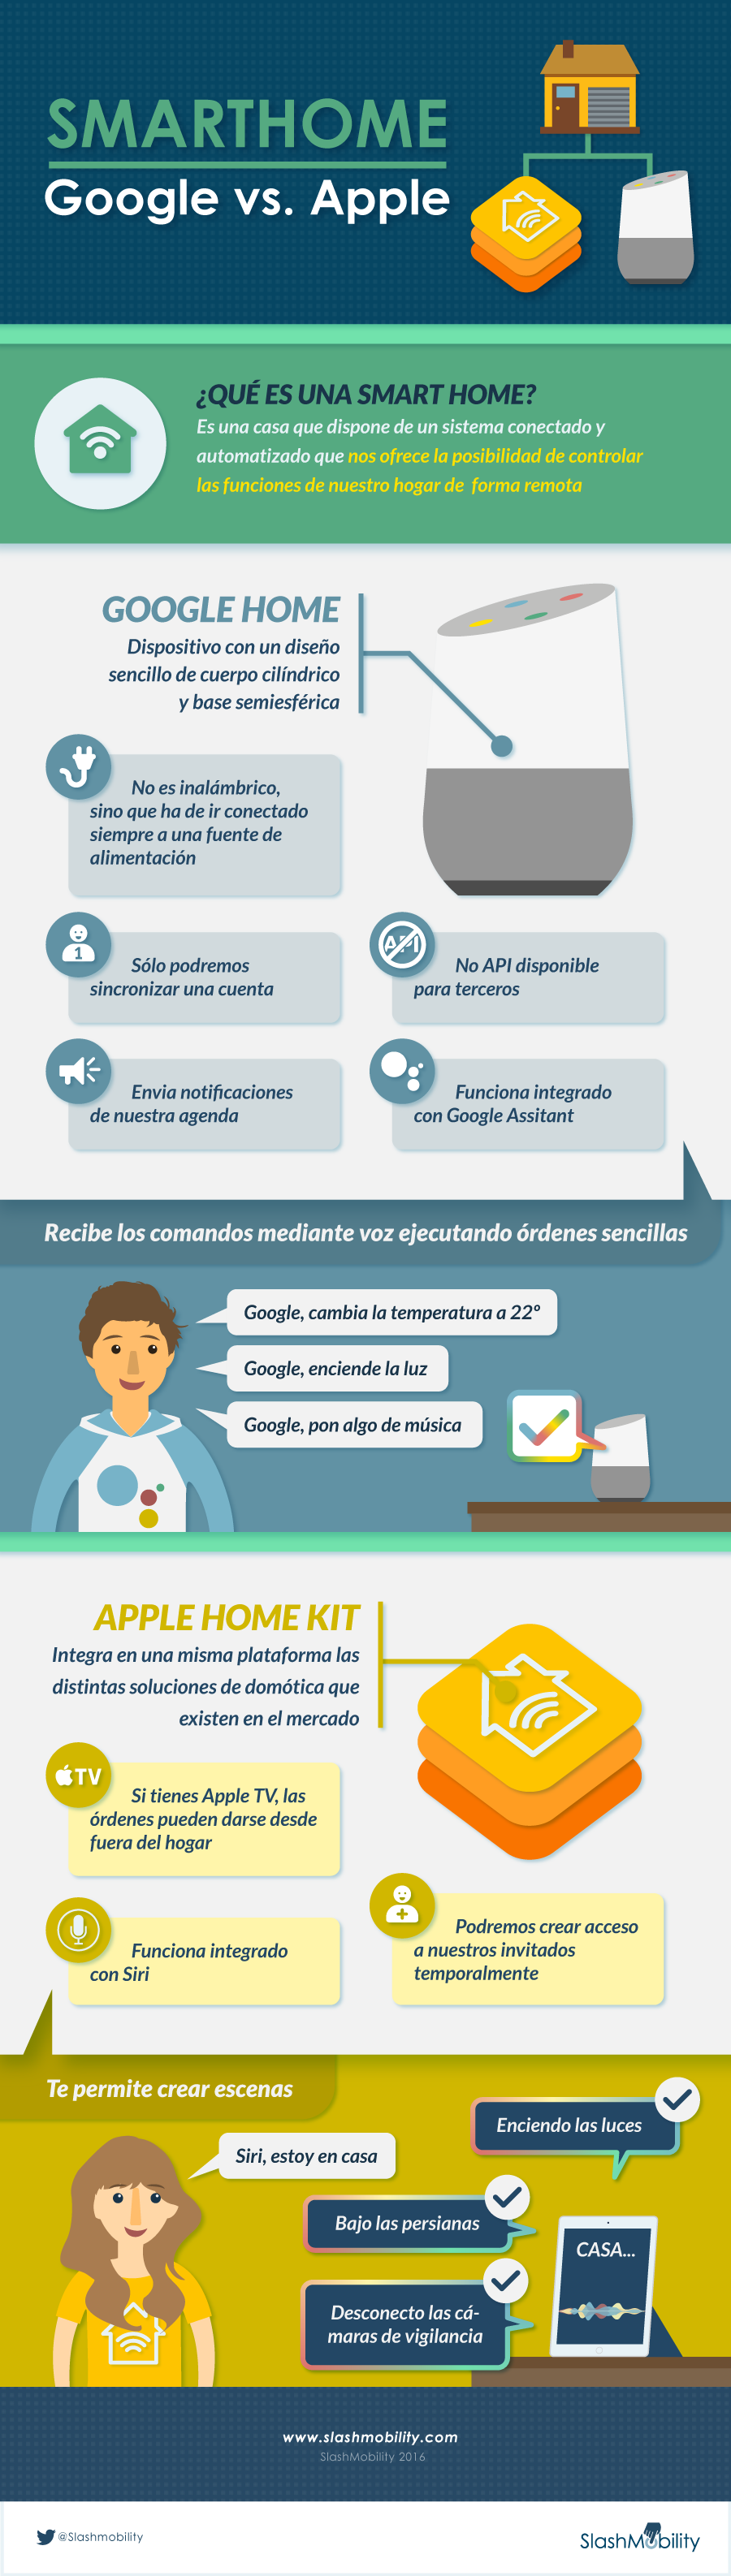 google home vs apple home kit